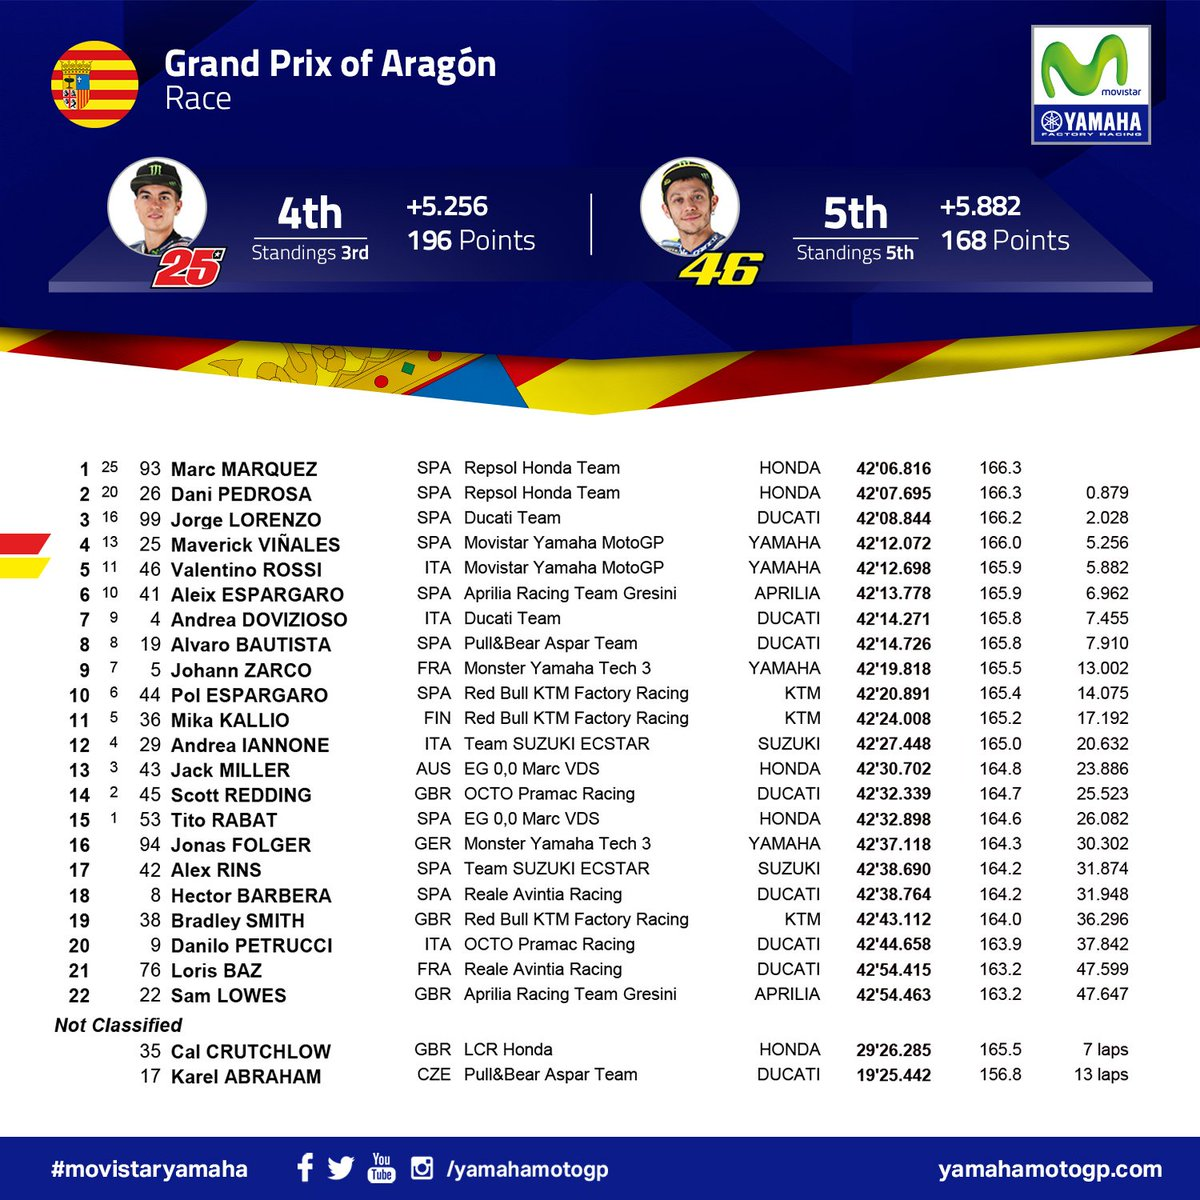 test Twitter Media - Race Results: Lots of action in Aragón! @maverickmack25 4th, @ValeYellow46 5th. #MovistarYamaha #MotoGP #AragonGP https://t.co/PZtUMyvcBP